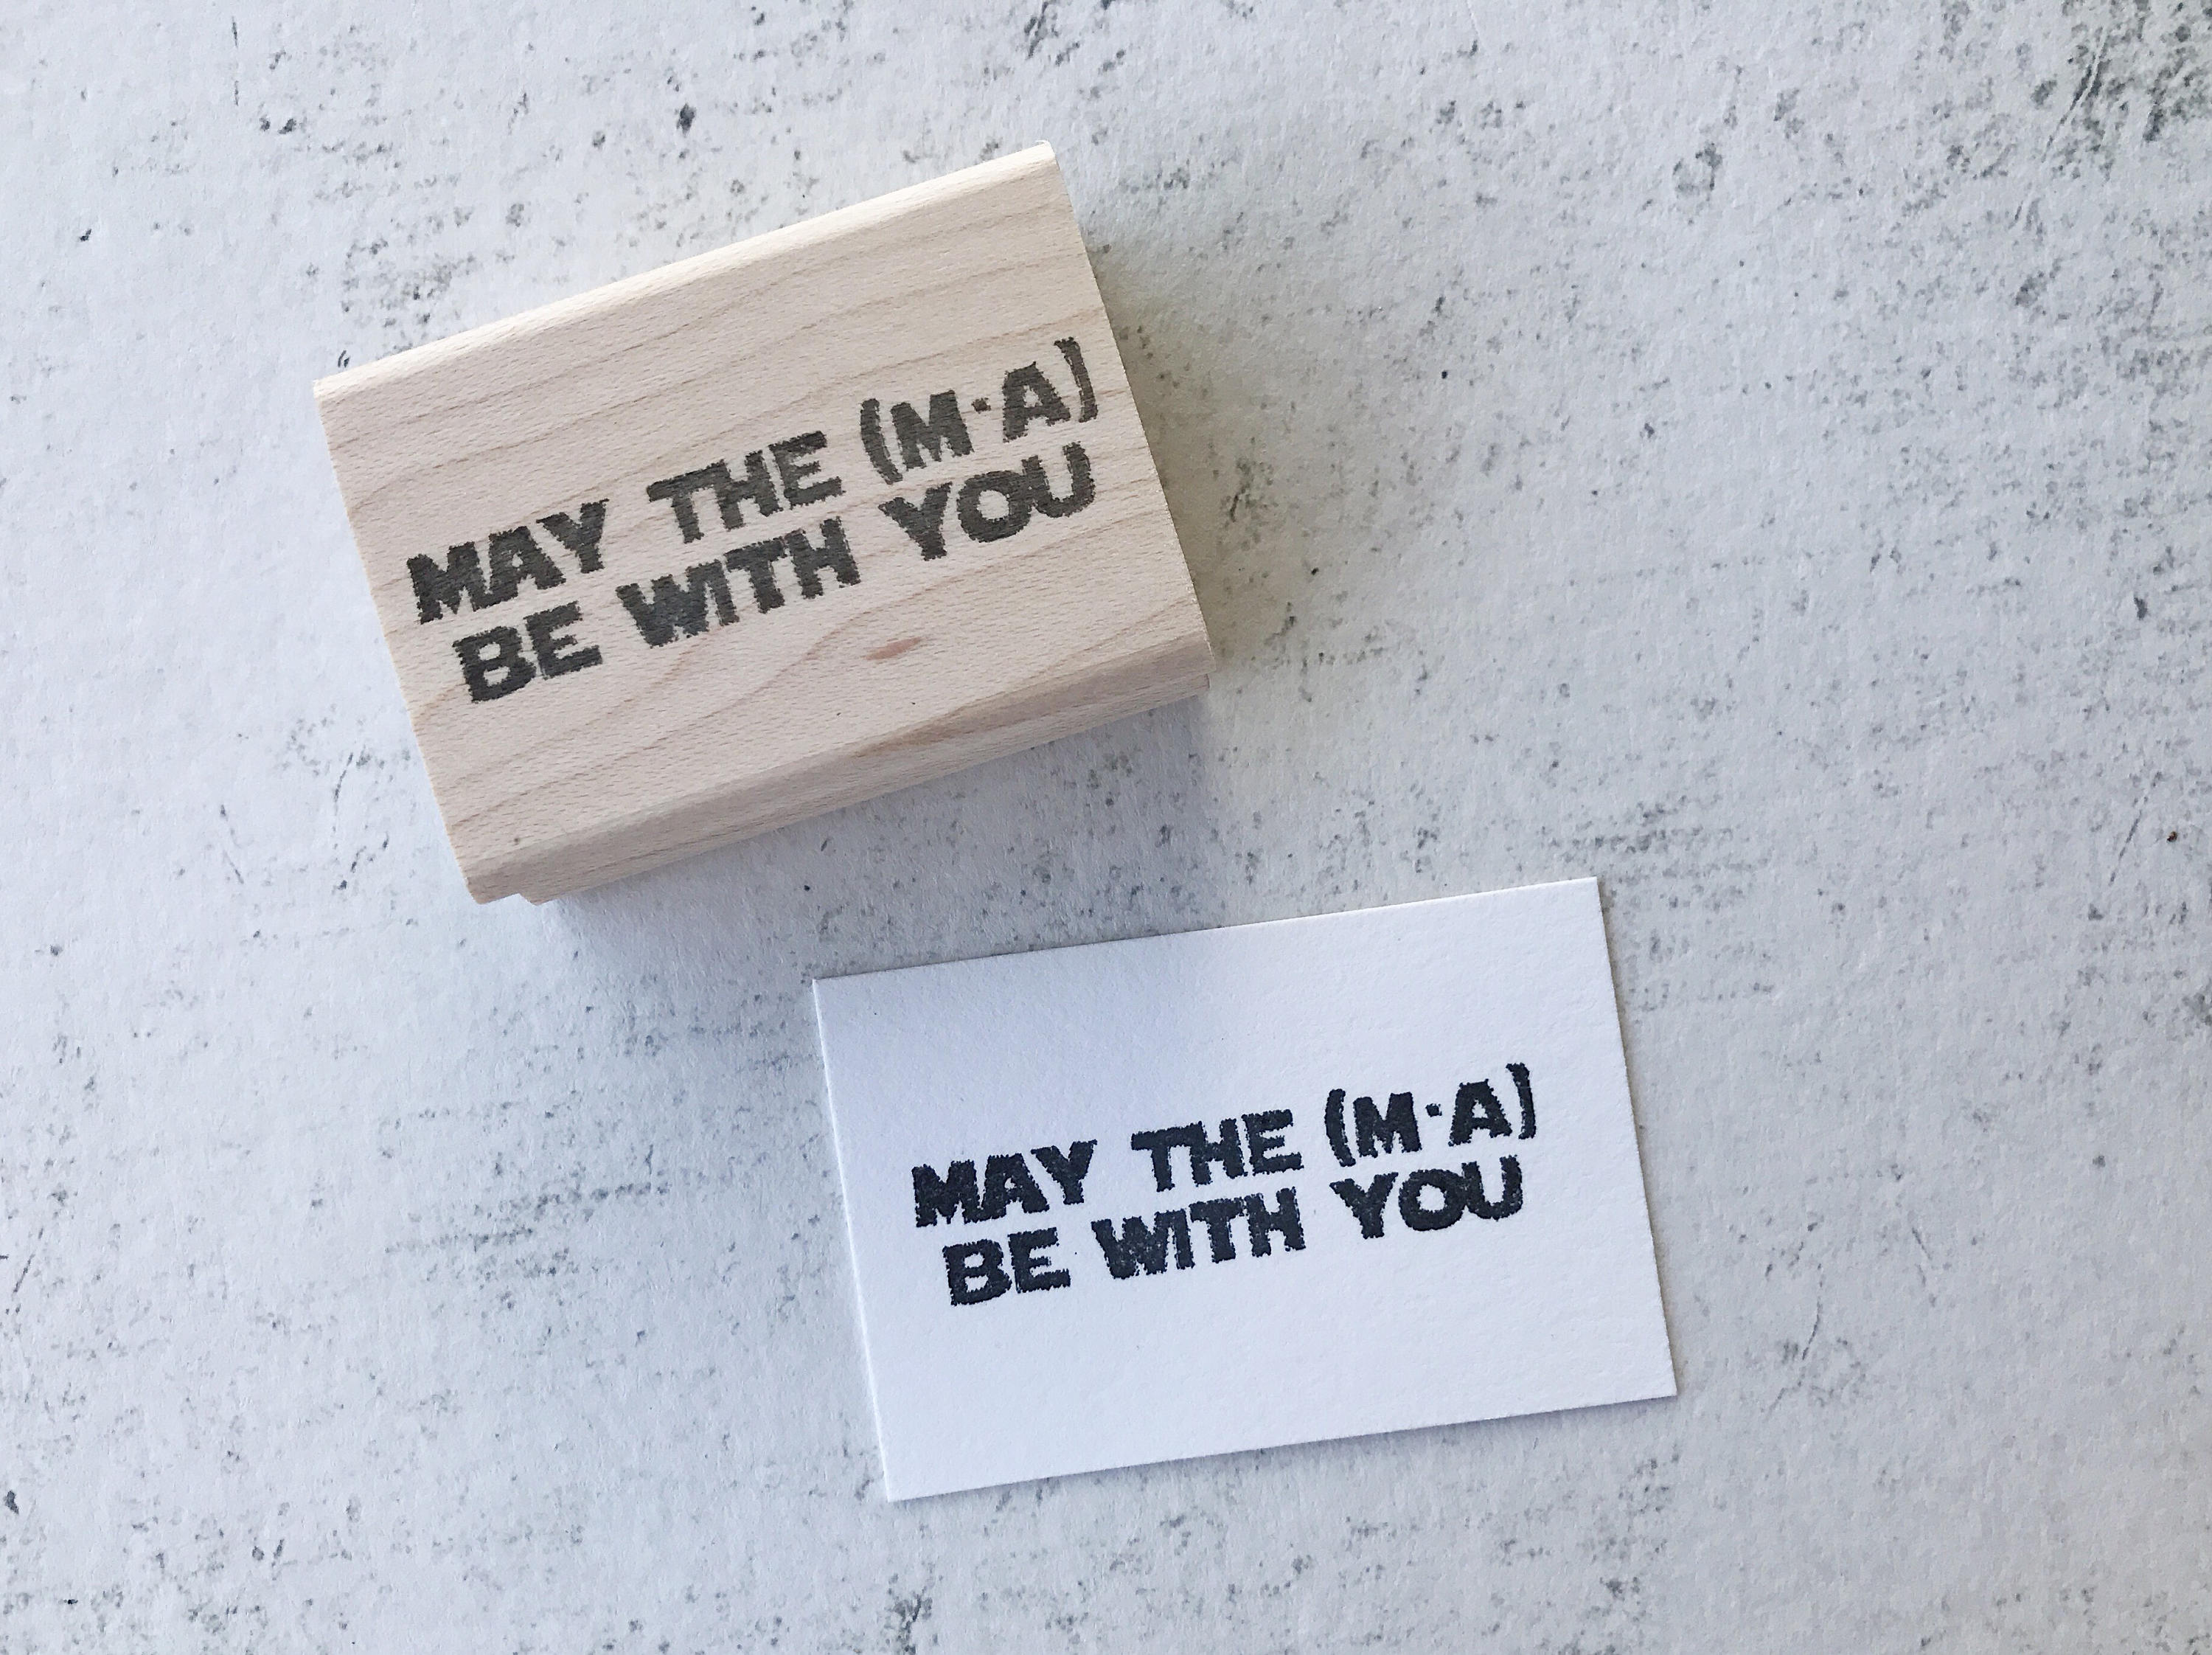 May The Force- Physics Stamp - Sci-Fi Physics and Math Stamp - Inspirational Teacher's Grading Stamp